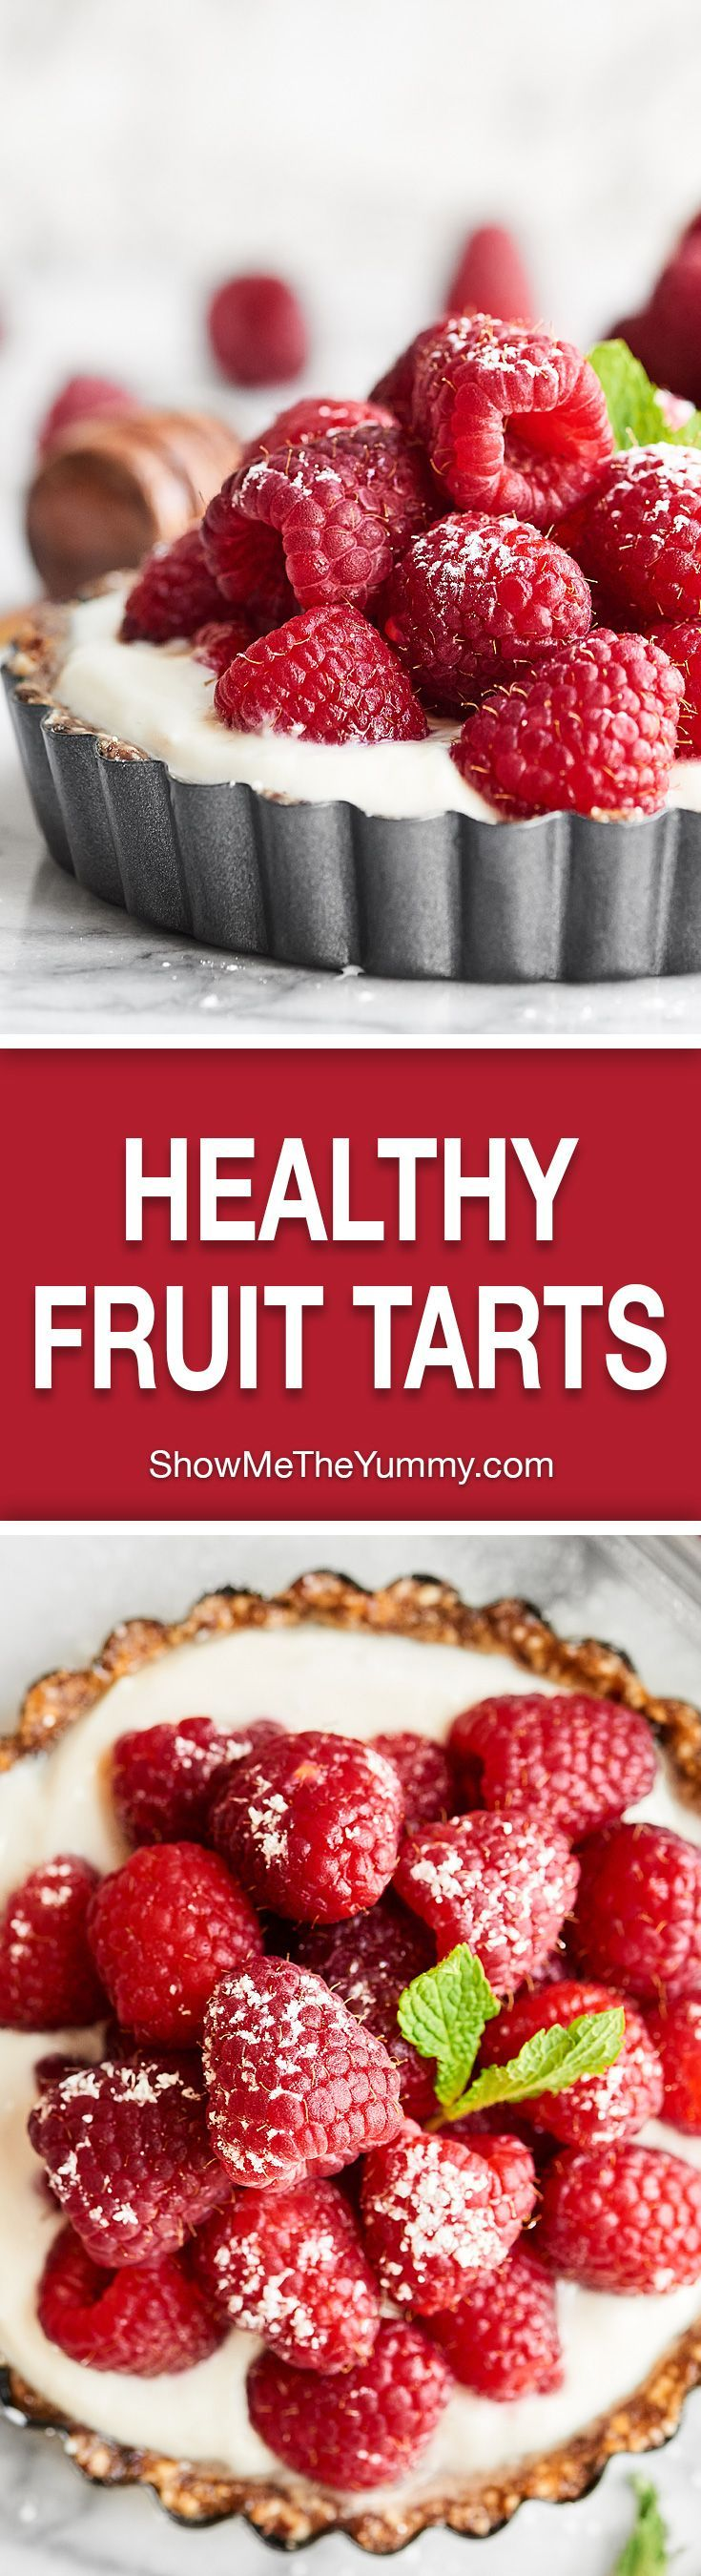 Only 5 ingredients - cashews, raisins, vanilla, yogurt, raspberries - & 10 minutes needed to make these Healthy Fruit Tarts! Great for breakfast or dessert! #ad #finestberries #raspberrydessert #healthy @DriscollsBerry